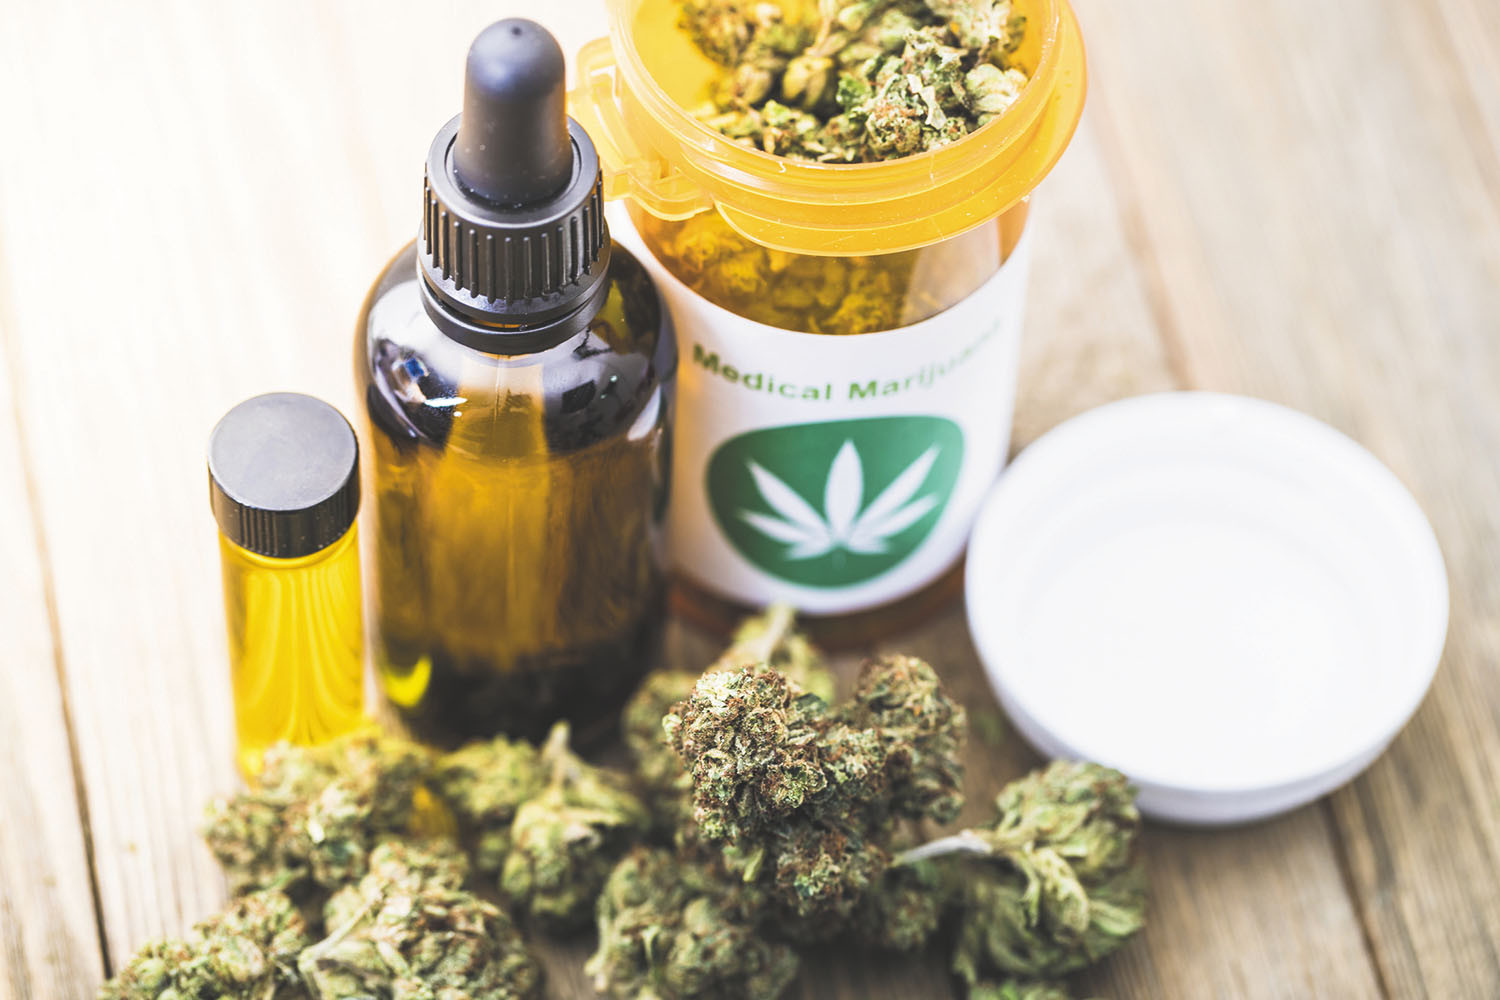 Is it time to consider using medical marijuana? - Harvard Health